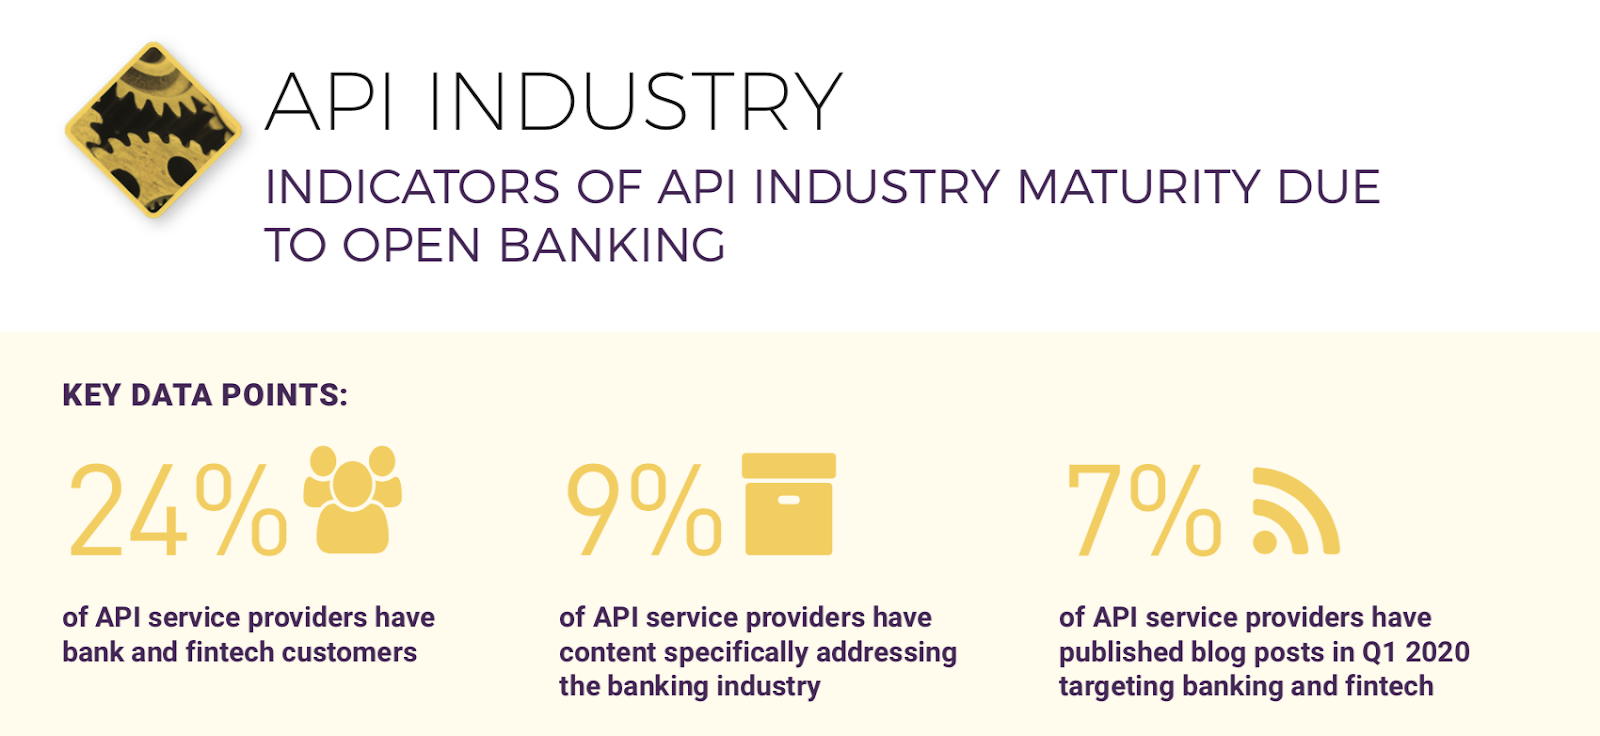 Infographic stating that 24% of API service providers have bank and fintech customers, 9% have content specifically addressing the banking industry, and 7% published blogs in Q1 targeting bank and fintech